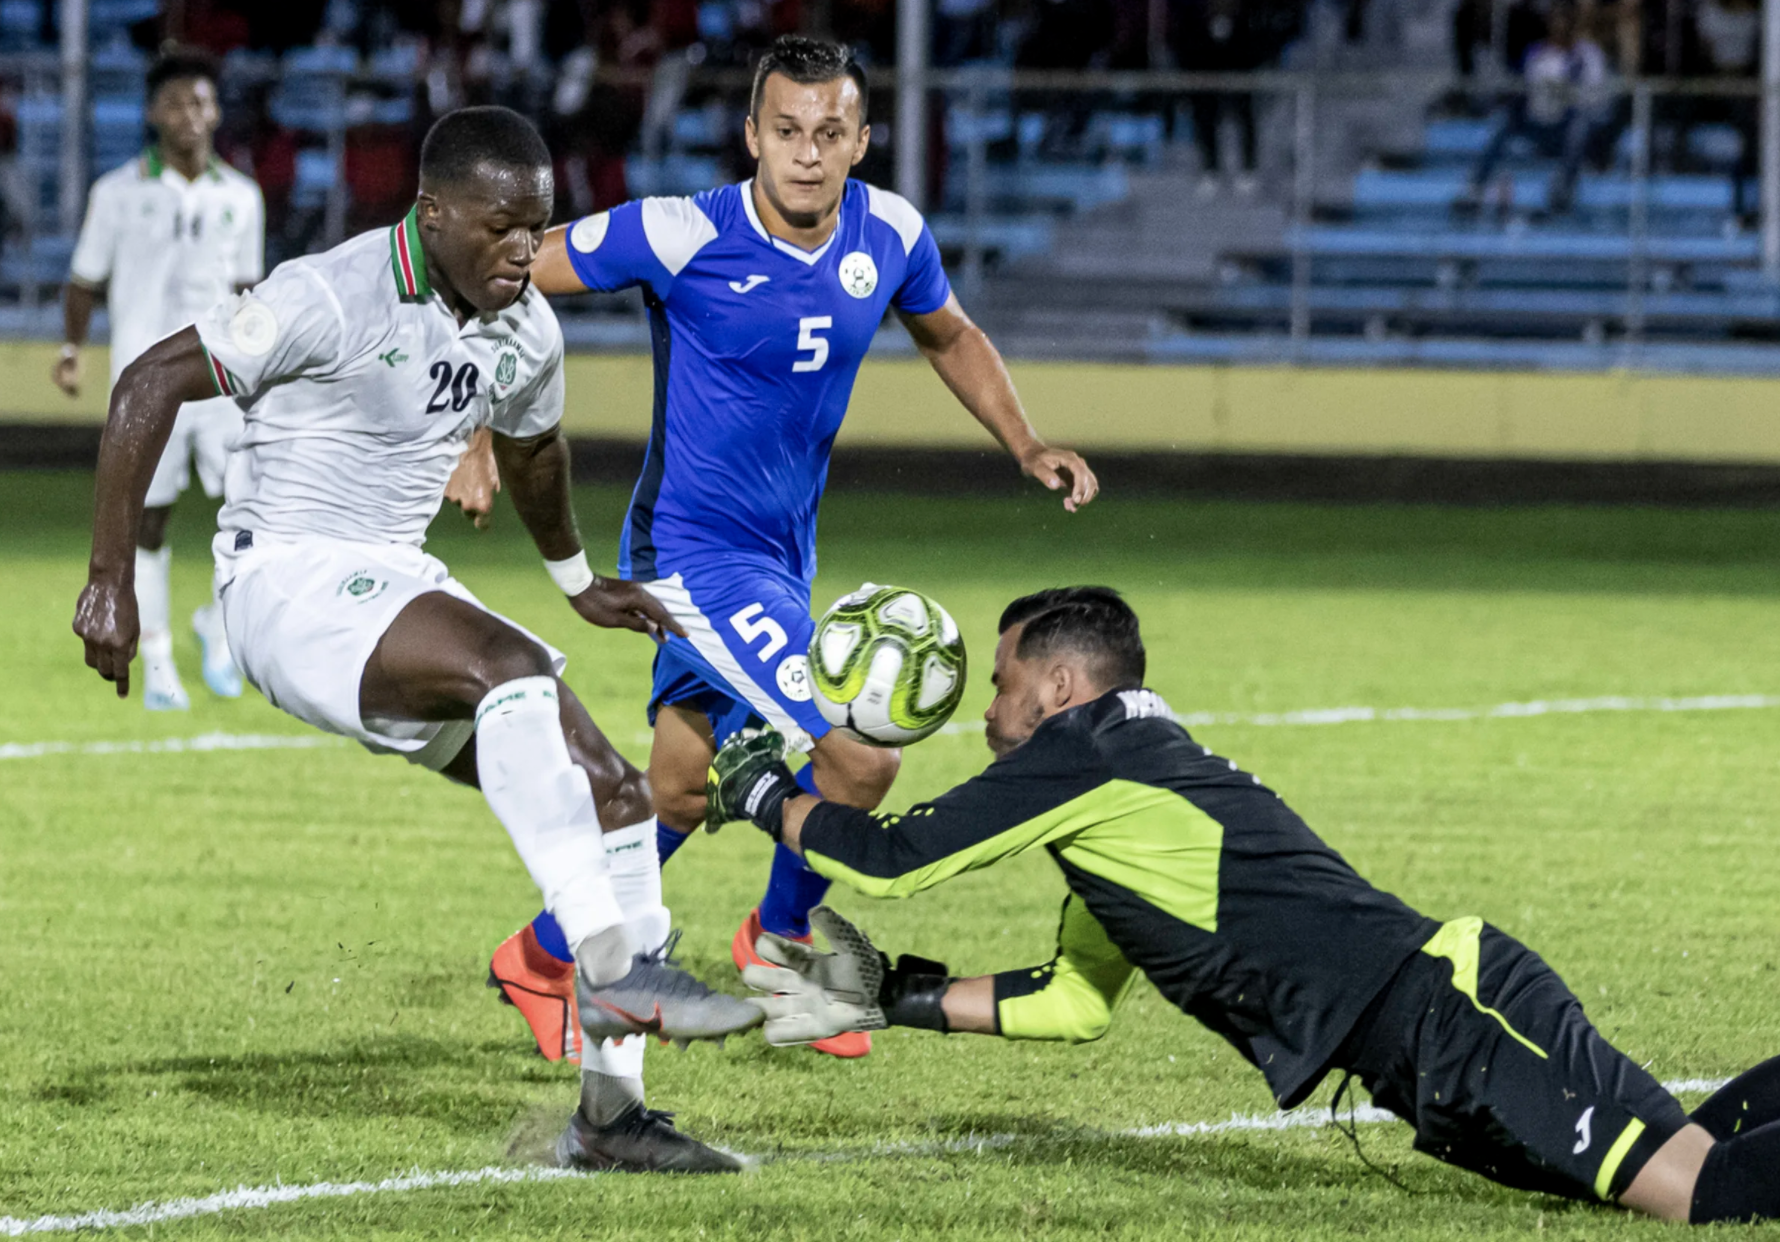 Vlijter, Lopez among players to watch in Concacaf WCQ